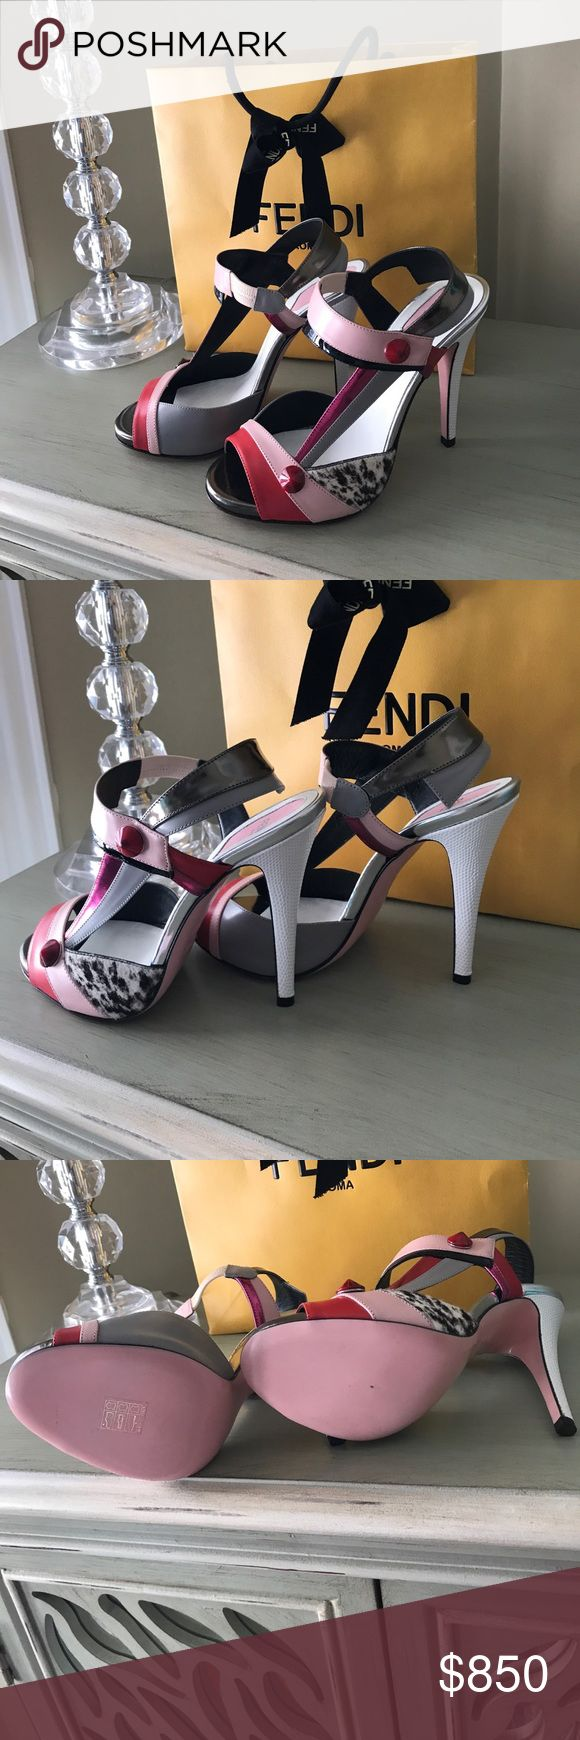 Fendi shoes Gorgeous Brand new, never worn multi-color (pink, white, black, red, grey) Fendi high heel shoes. Wearable art at its finest! Comes with certificate of authenticity, original box and draw string storage bag. Fendi Shoes Heels